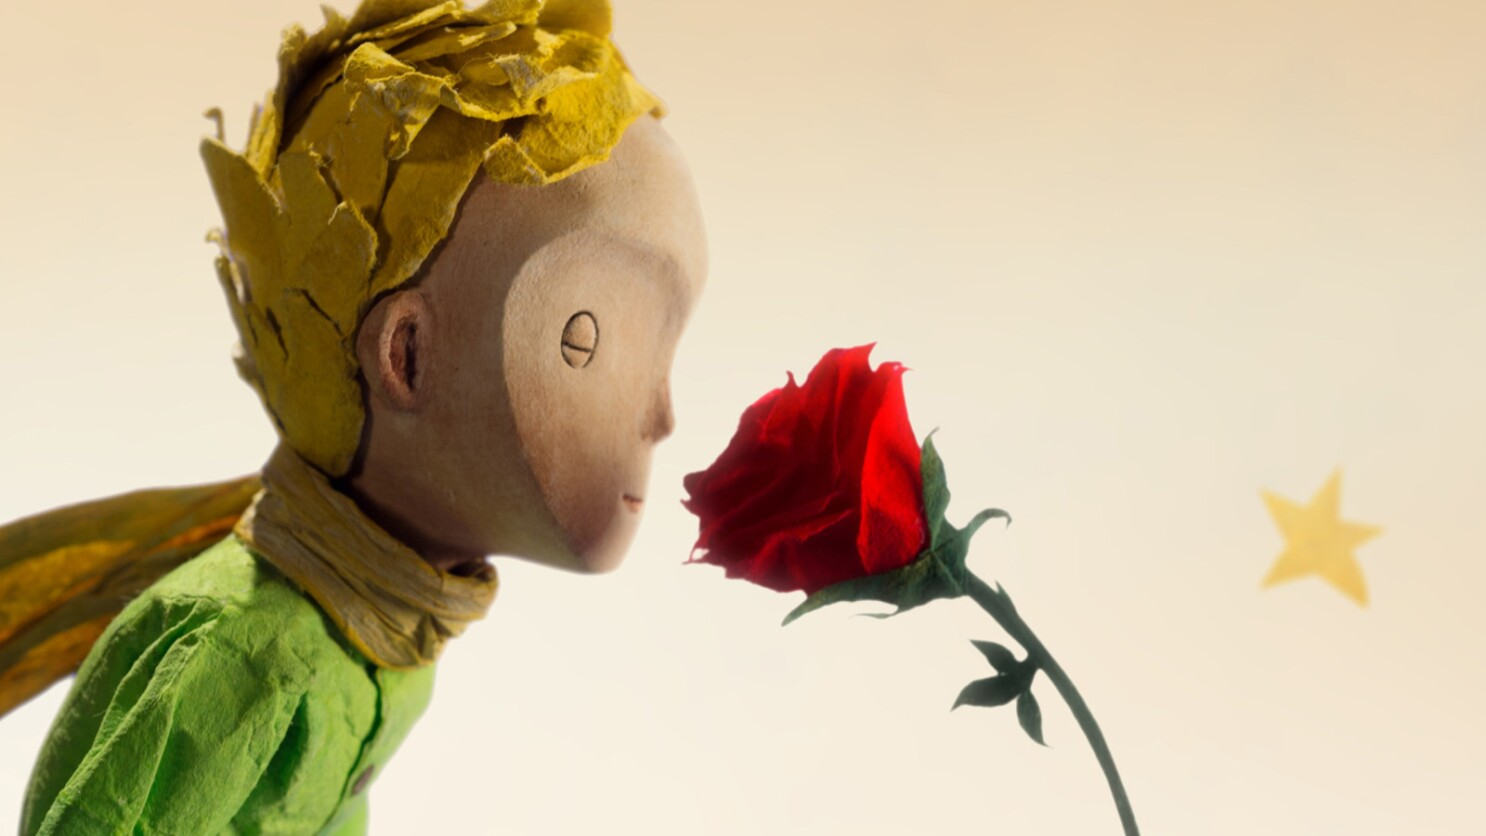 Classic tale of 'The Little Prince' fails to soar - Los Angeles Times